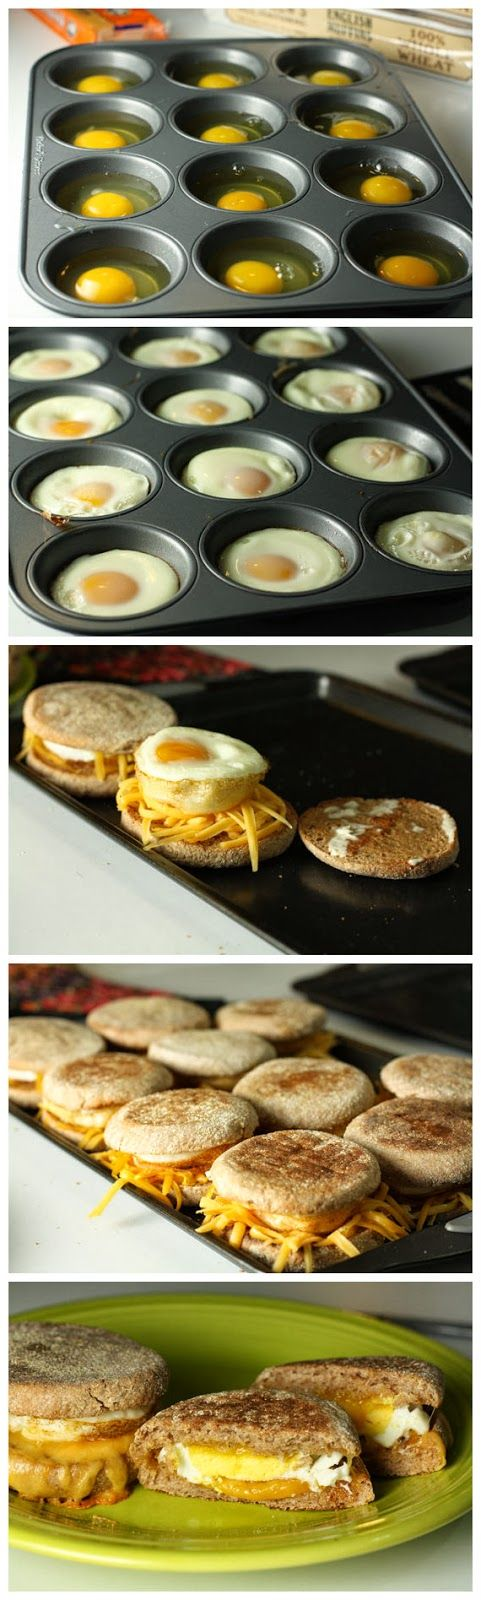 Egg and Cheese Breakfast Sandwiches - Truelifekitchen Breakfast recipe for a small gathering